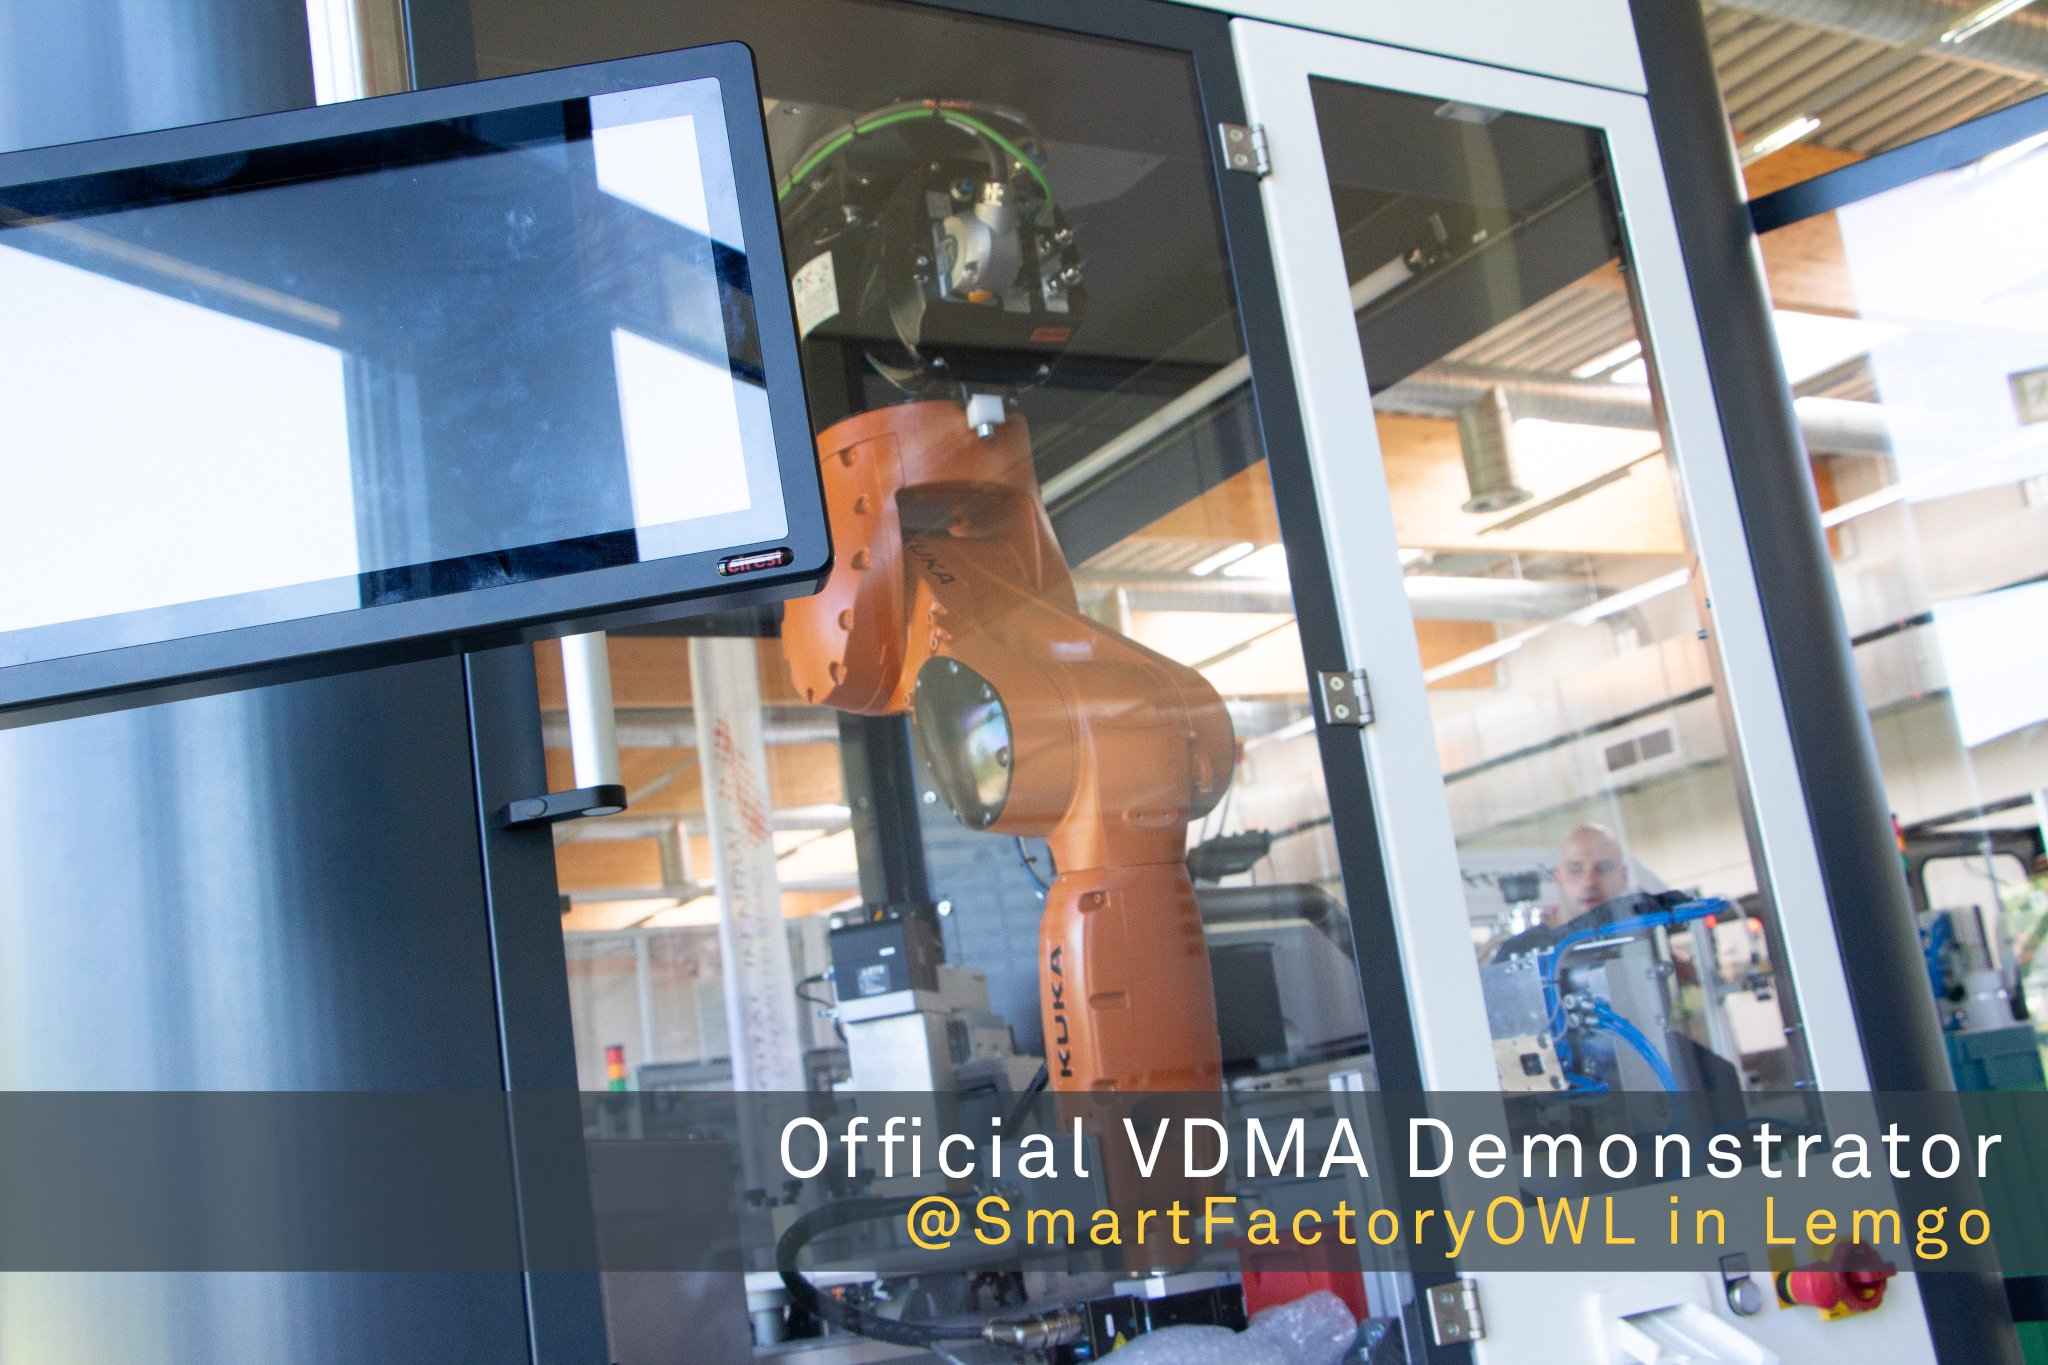 Smartfactoryowl On Twitter Some New Cool Stuff Has Been Delivered Today The Official Vdmaonline Demonstrator Meets Smartfactoryowl Wanna See It Join Our Latest Smartfactorytour On Friday 20th Of July 2018